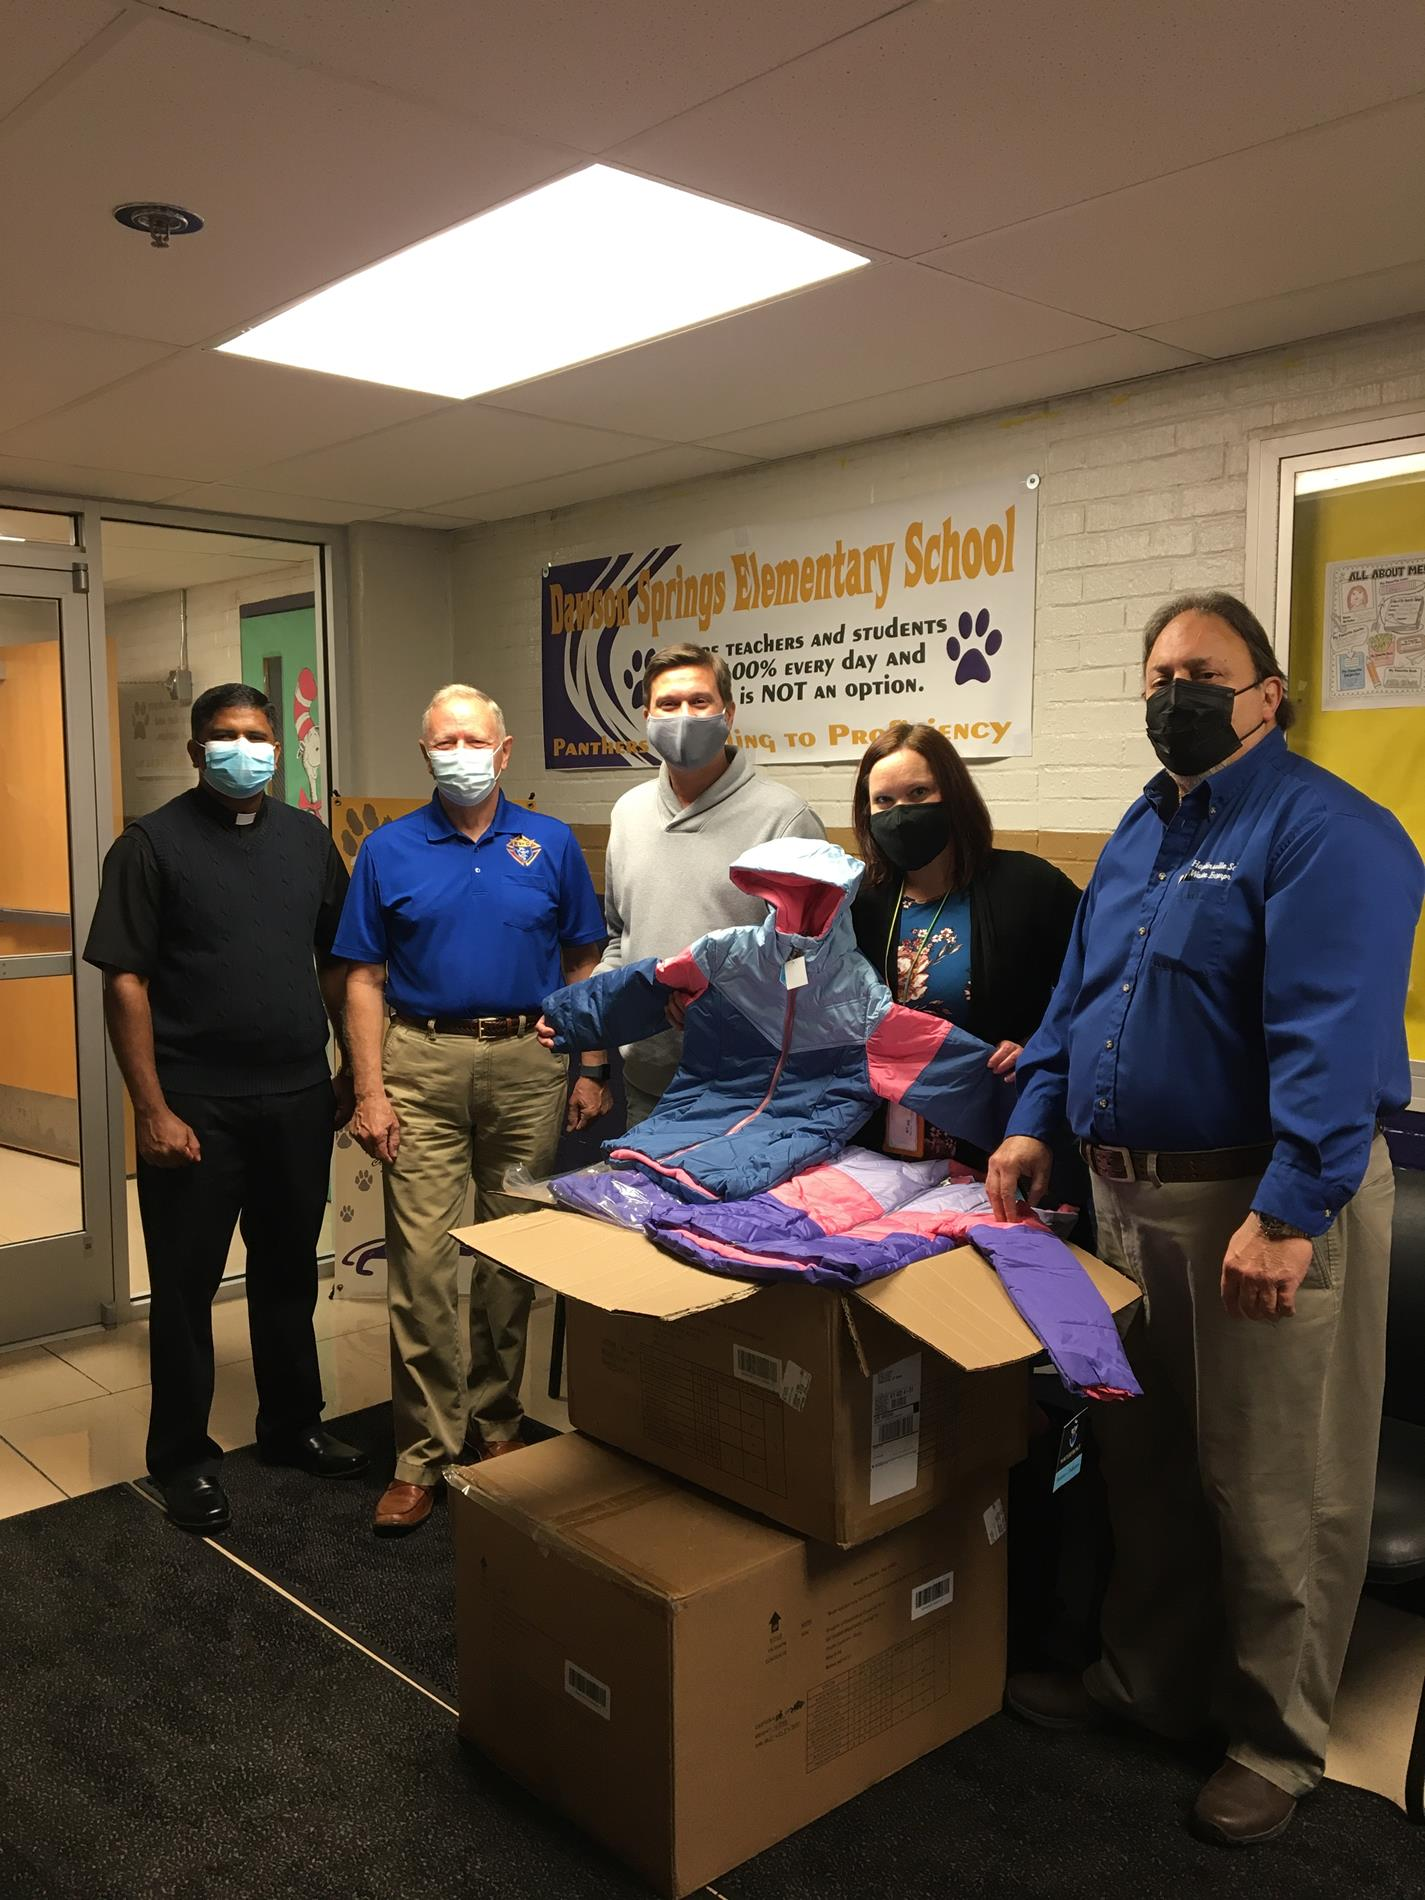 The Knights of Columbus Blessed Trinity Council donated 24 coats to the Dawson Springs Family Resource and Youth Service Center on Monday. Pictured from left are Father Jojy Joseph, District Deputy George Barber, FRYSC director Jonathon Storms, program assistant Melinda Coates and Grand Knight Tony Sicari